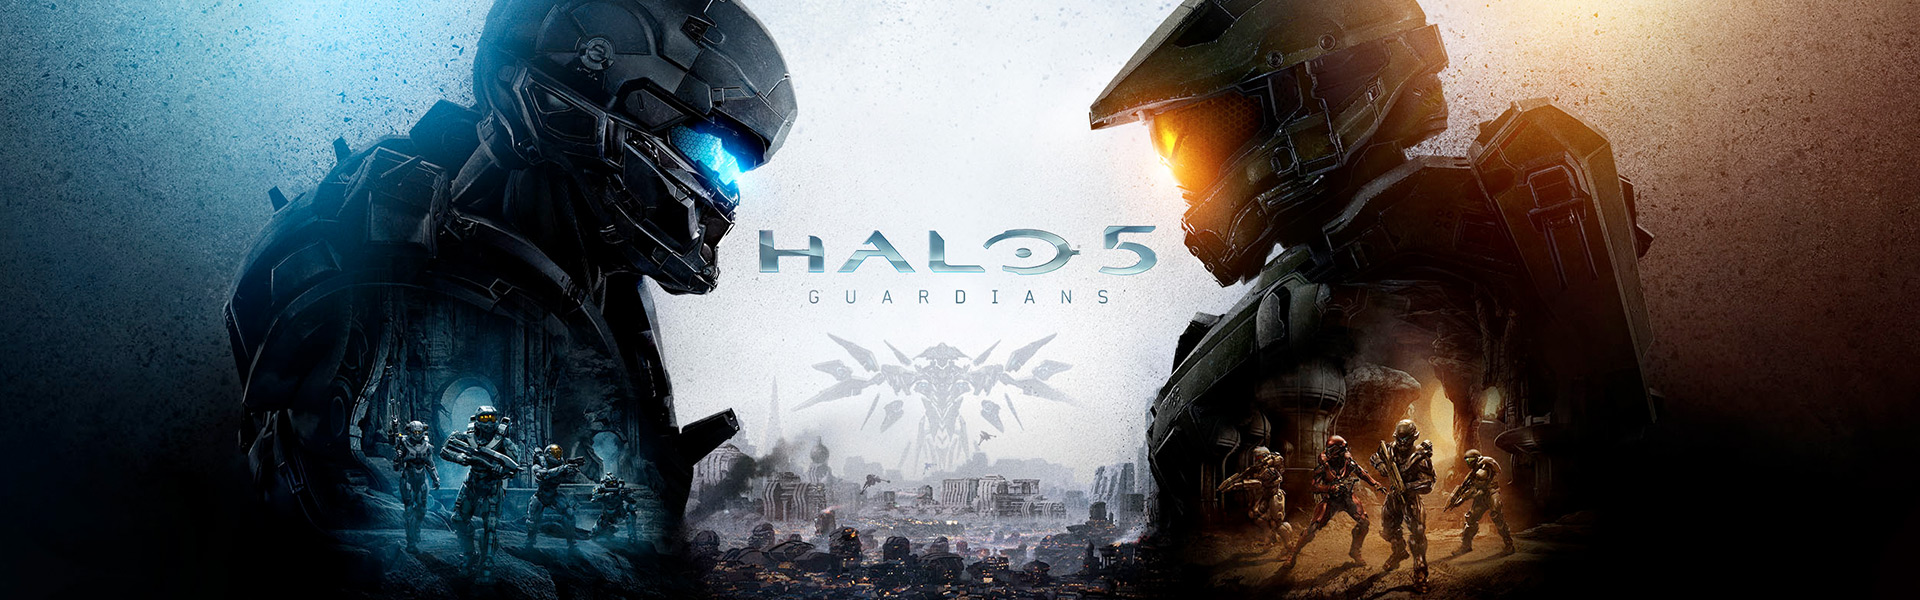 Halo 5 Guardians, due Spartan contrapposti